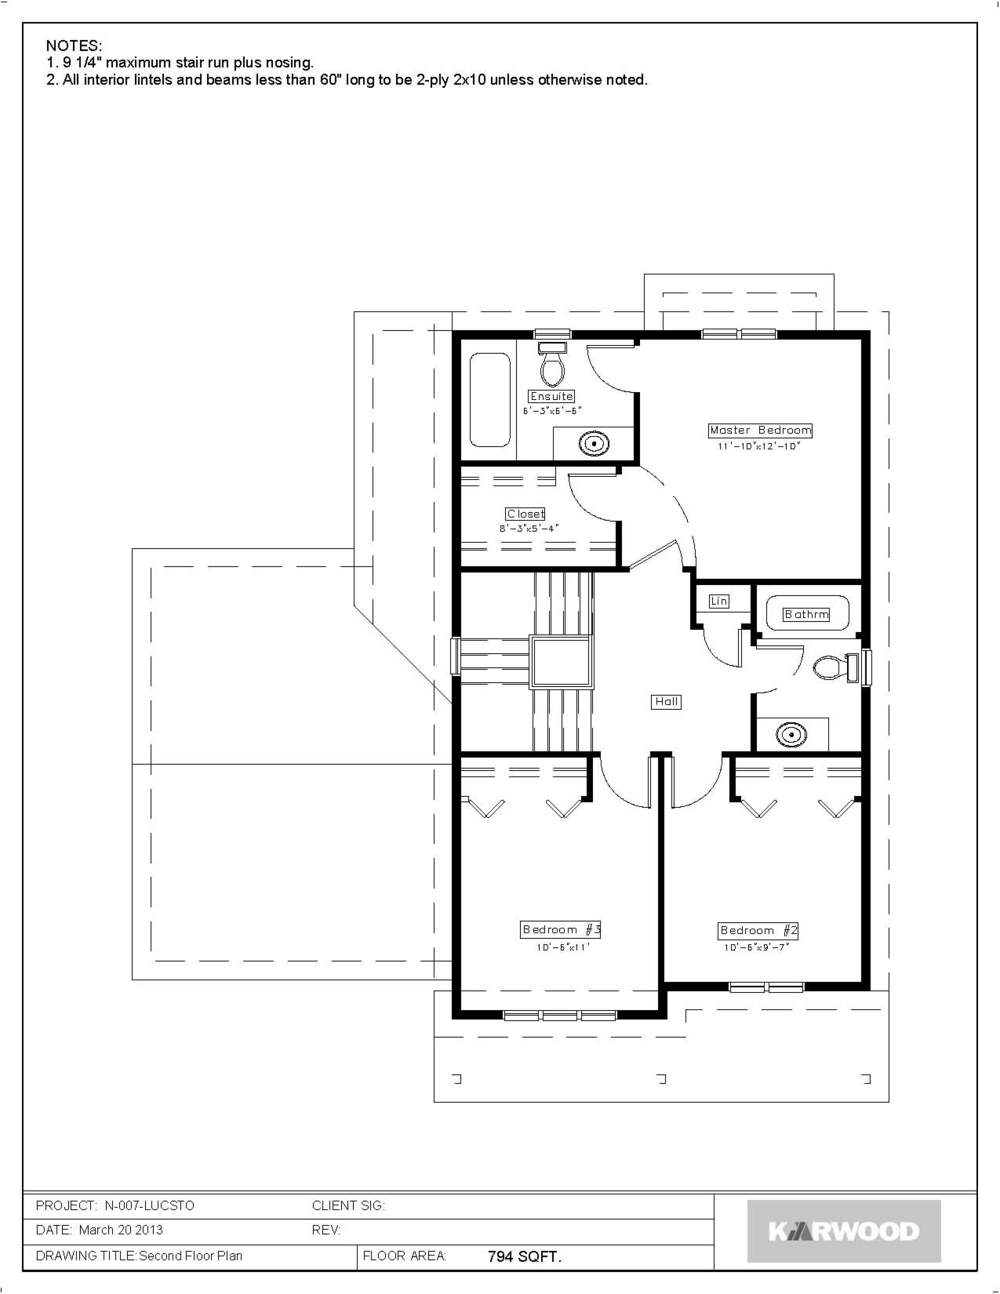 N-007-LUCSTO (listing plans)_Page_3.jpg